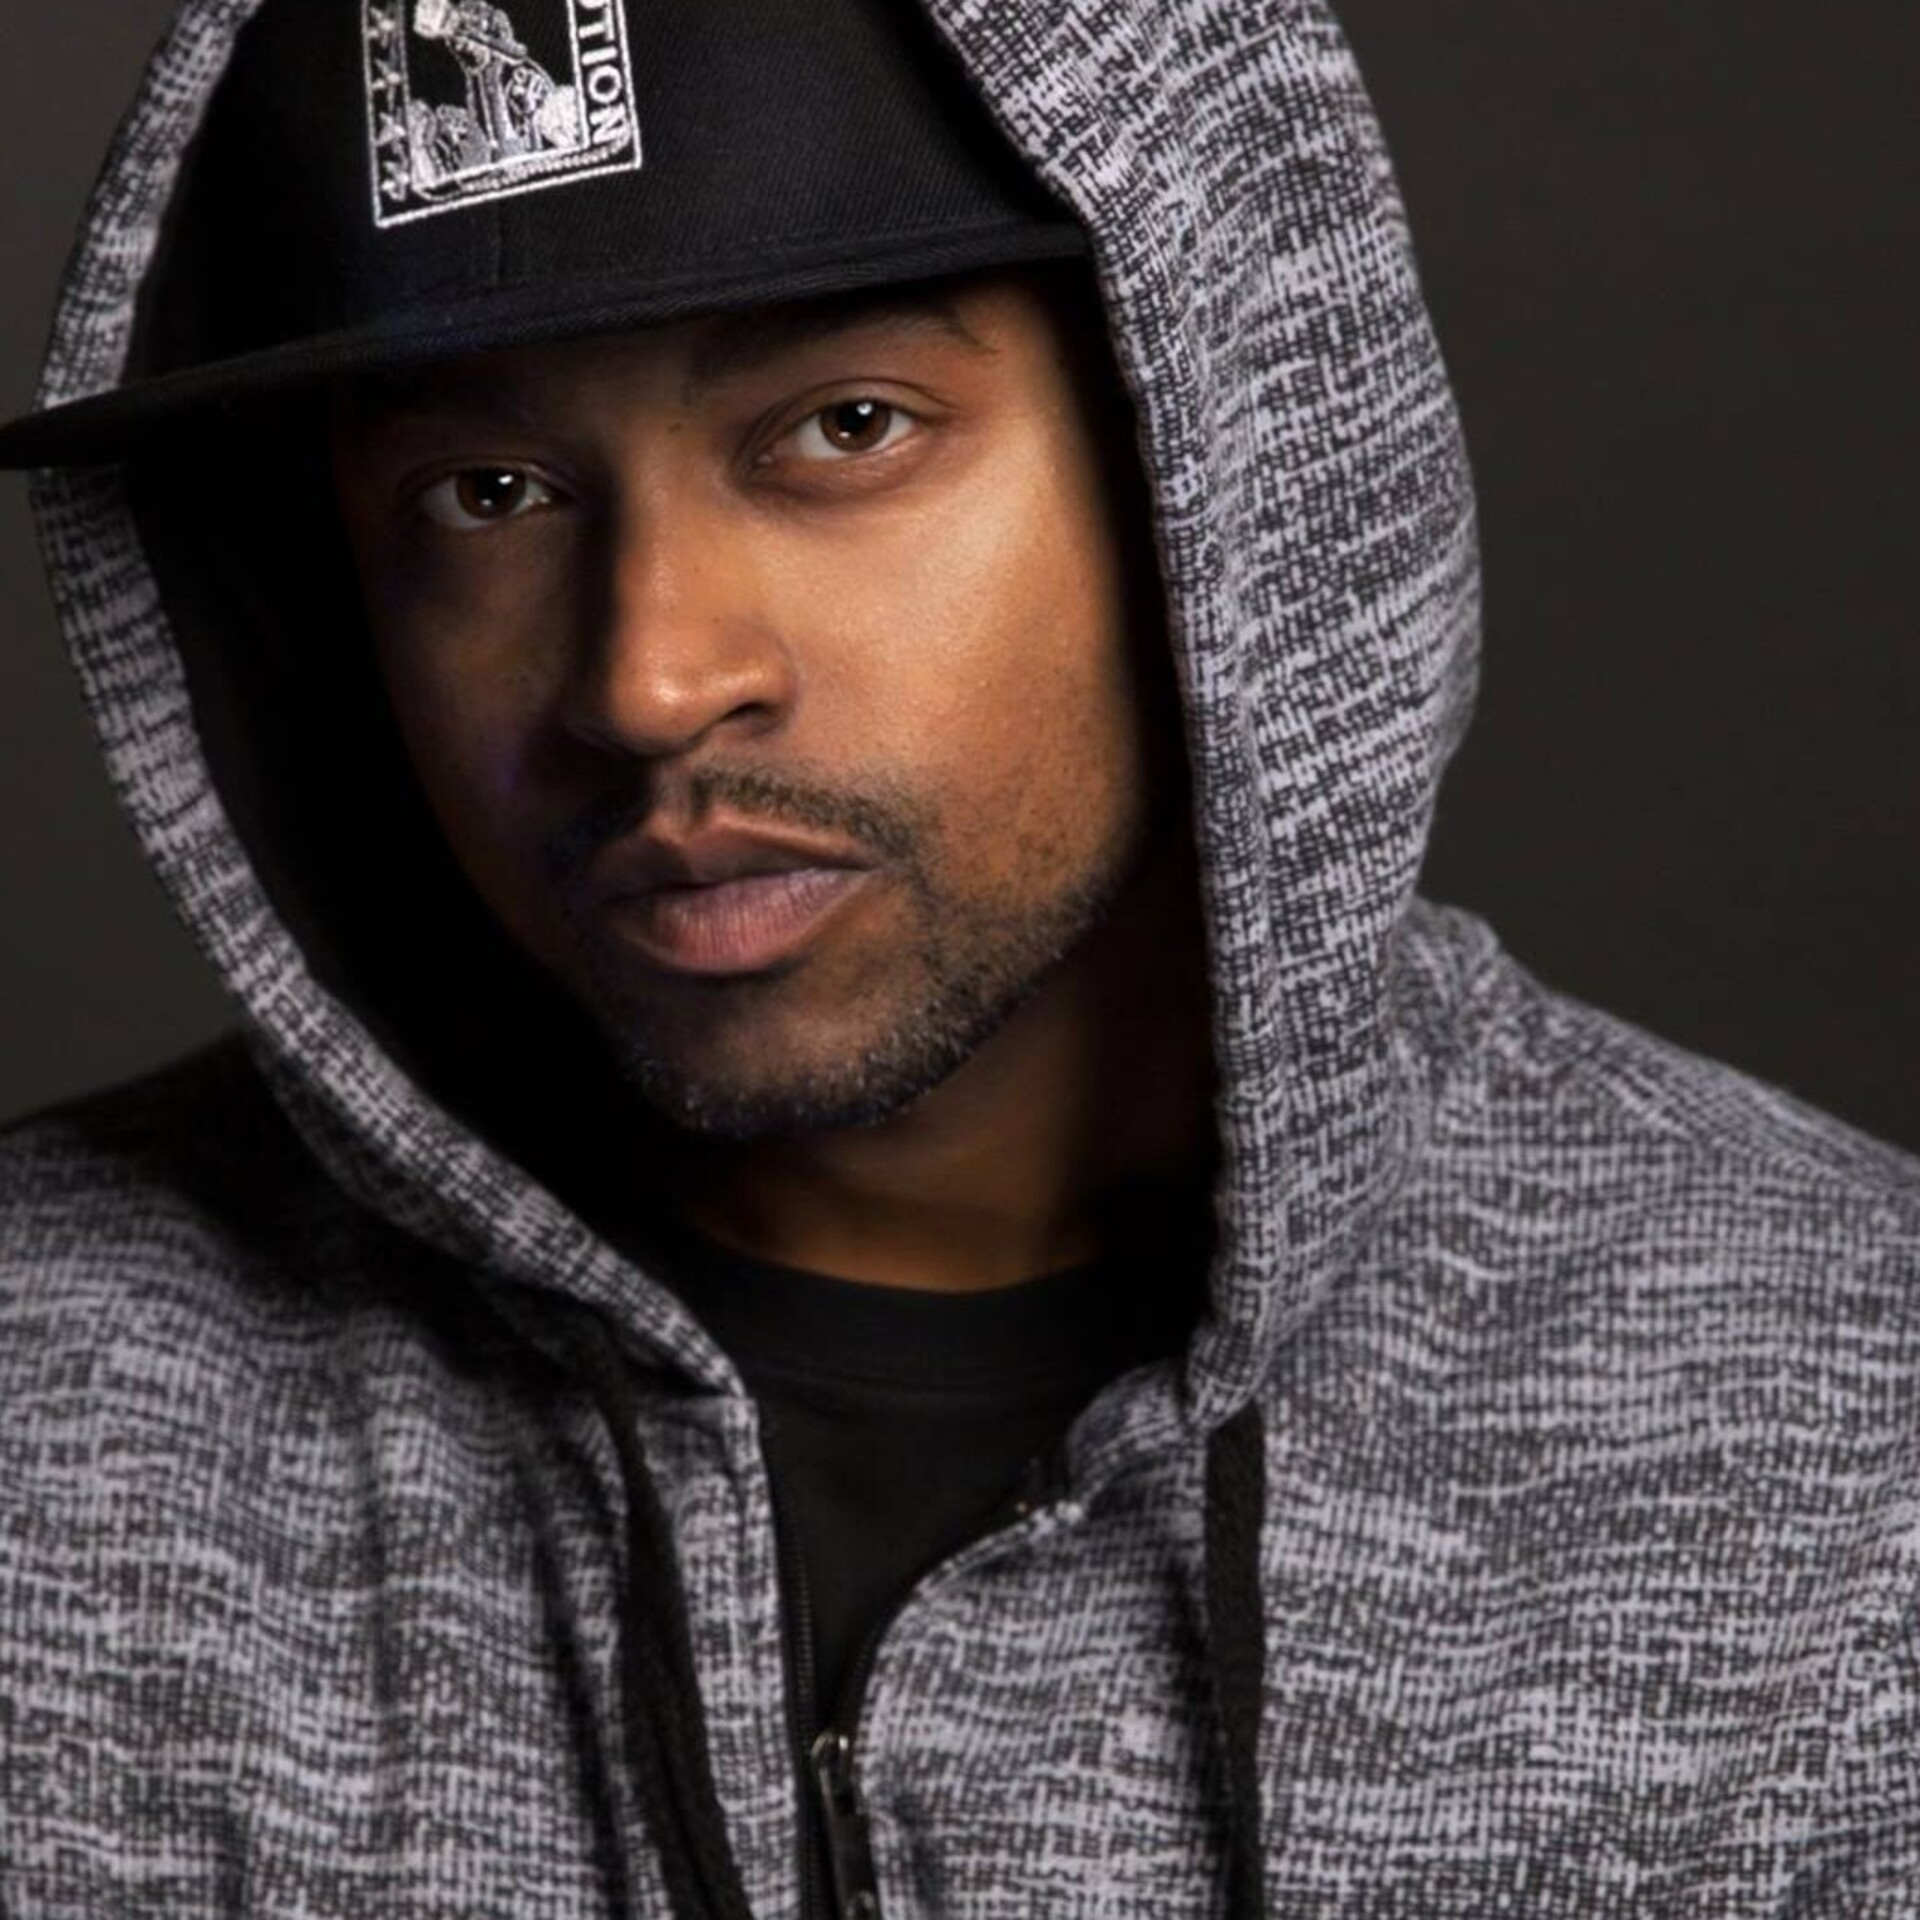 American hip-hop artist Wordsmith to give four free concerts in